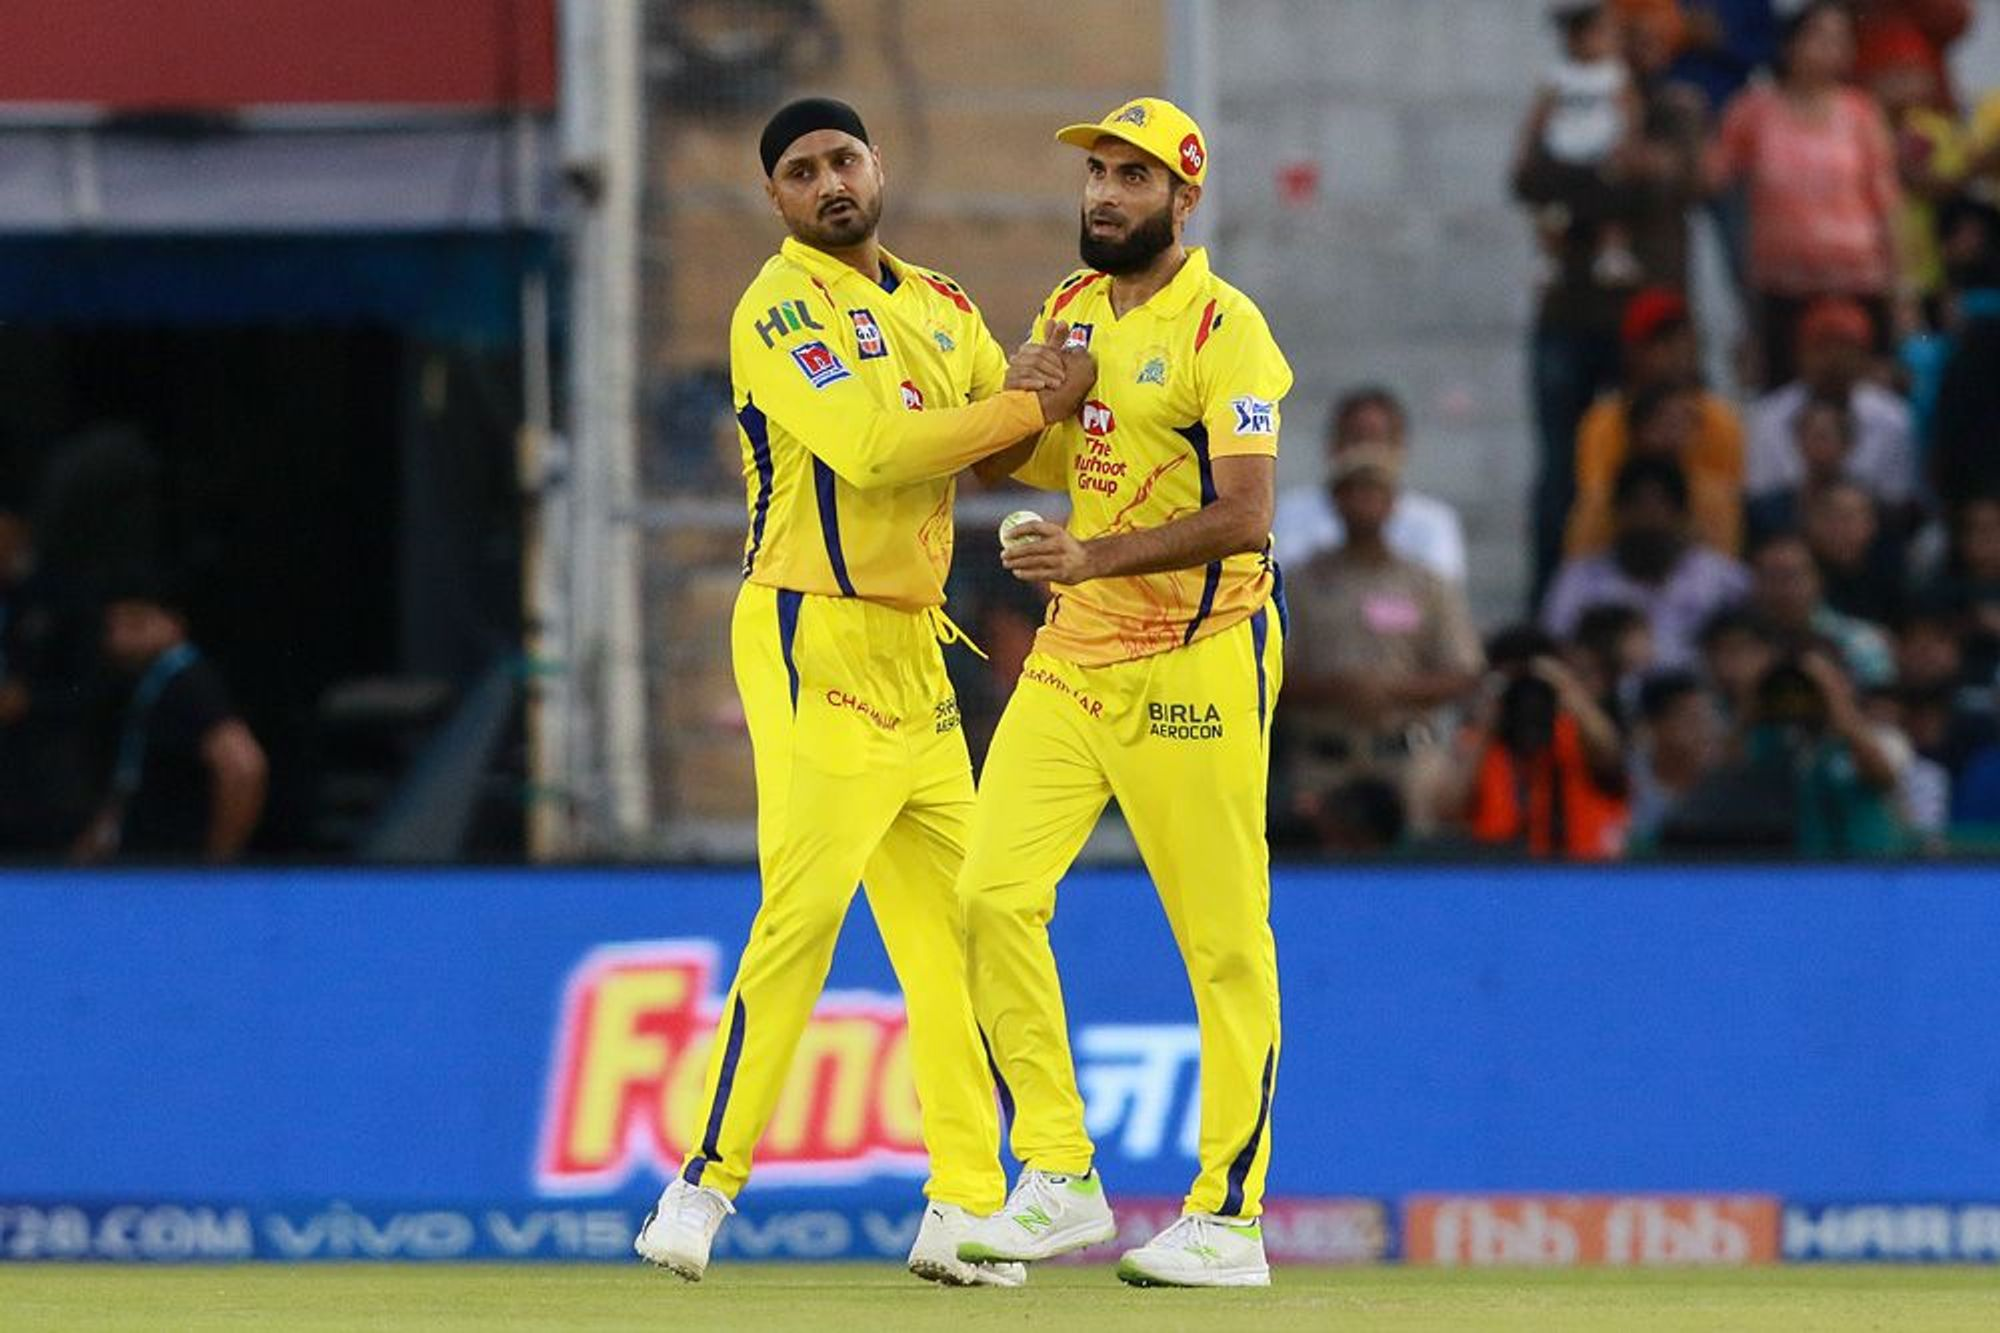 Harbhjajan Singh picked the wickets of Rahul and Gayle off the successive deliveries in the 11th over as Chennai tried to fight back. While Rahul blasted 71 off 36 balls, Gayle scored 28 . KXIP were 108/2 at fall of Gayle's wicket.